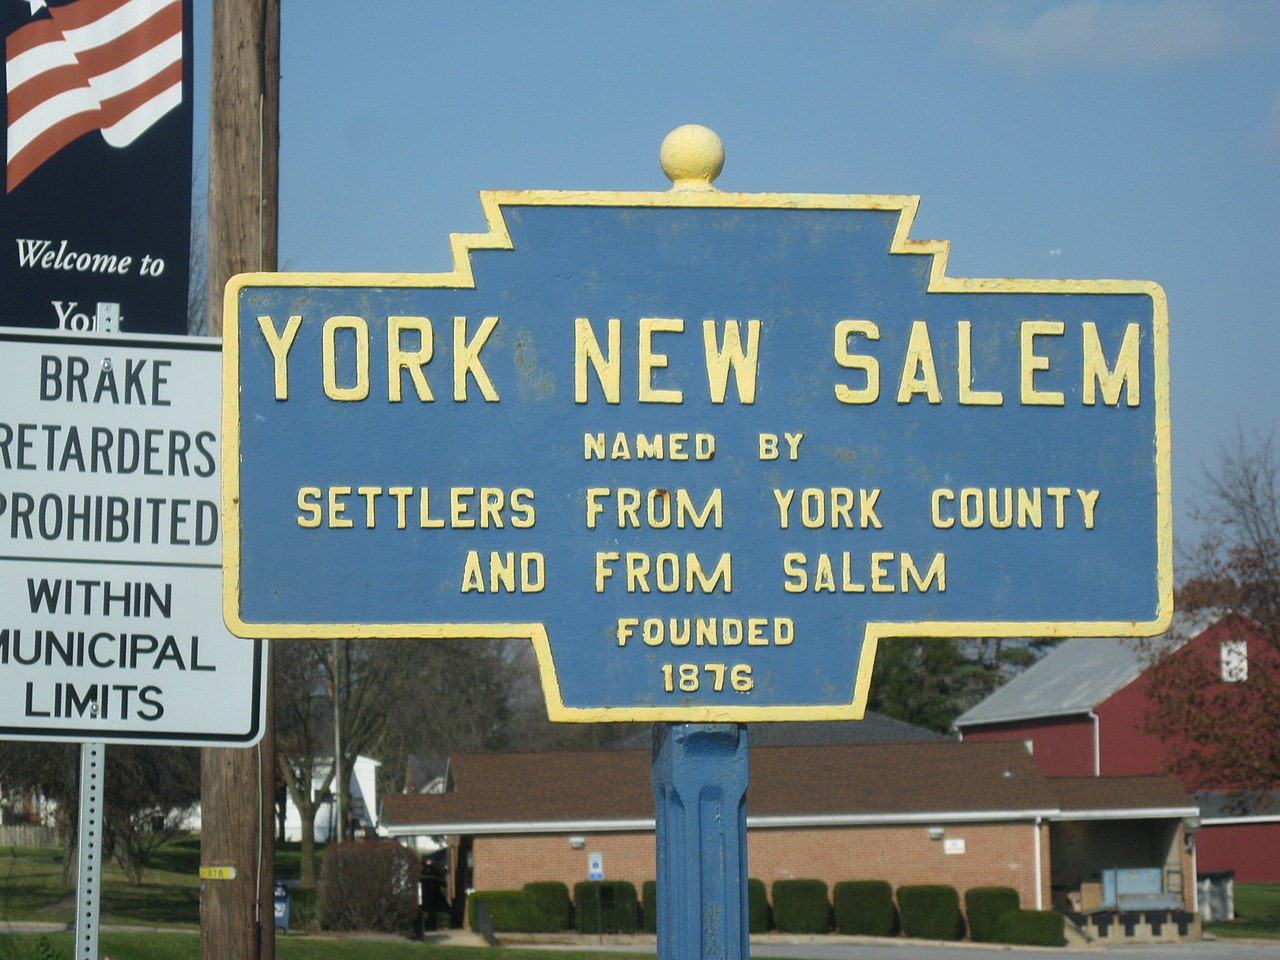 york new salem chatrooms Find 131 listings related to rutters in york new salem on ypcom see reviews, photos, directions, phone numbers and more for rutters locations in york new salem, pa.